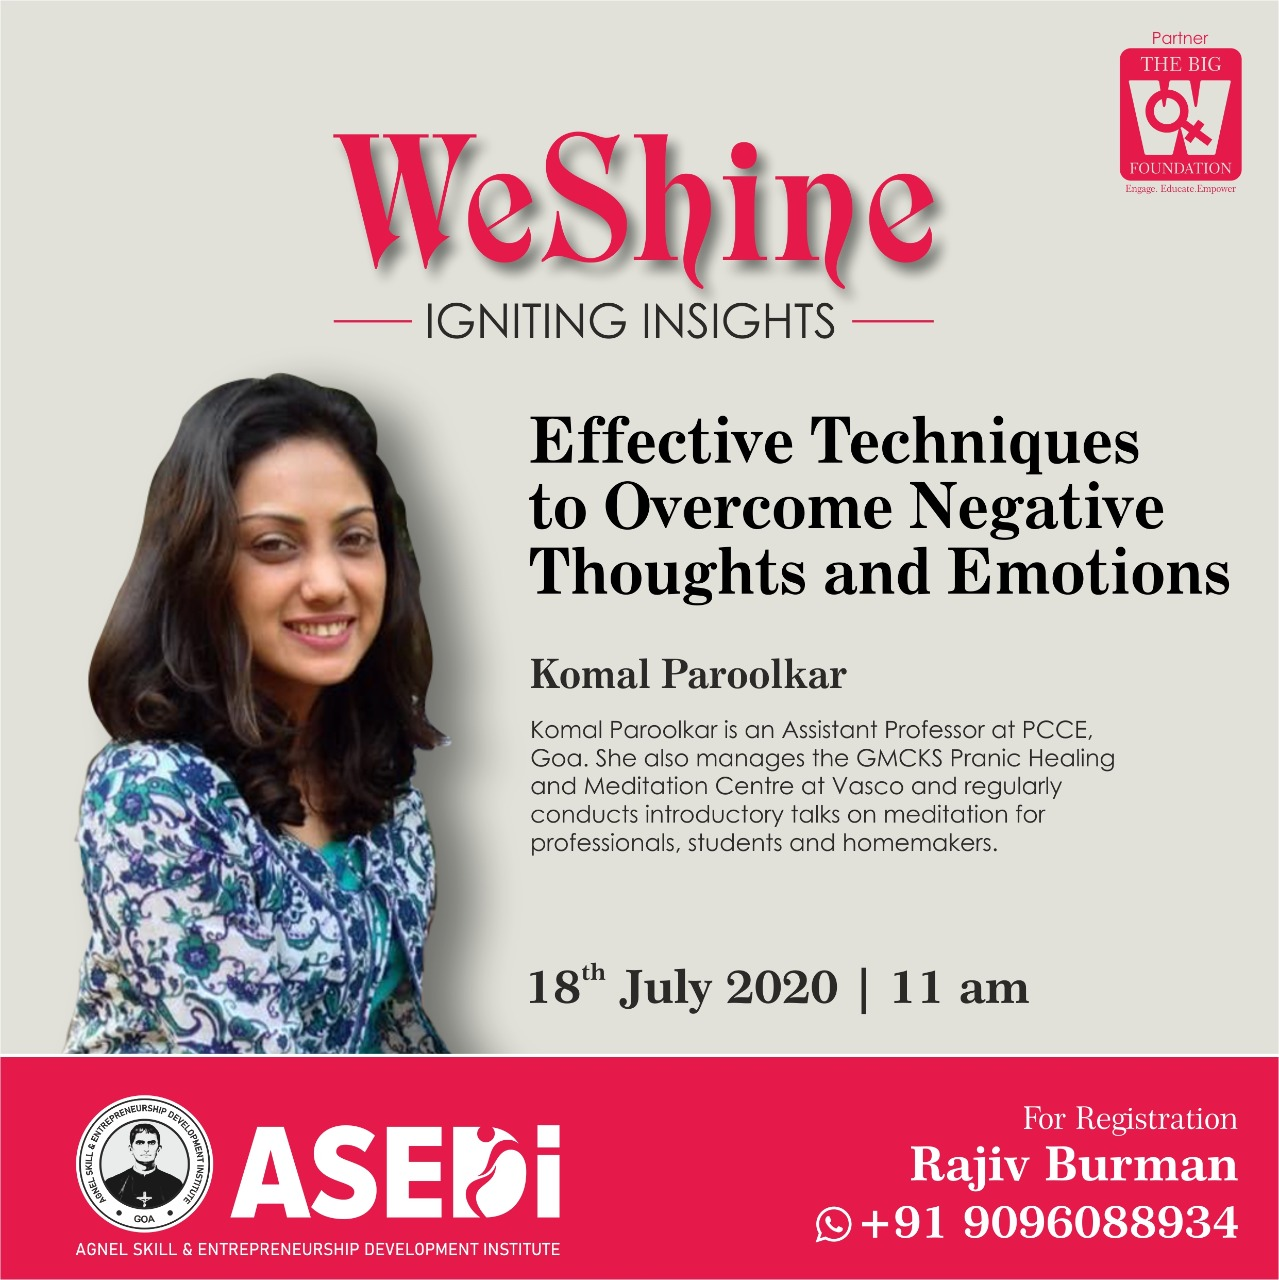 ciba-WeSHINE - Effective Techniques to Overcome Negative Thoughts and Emotions